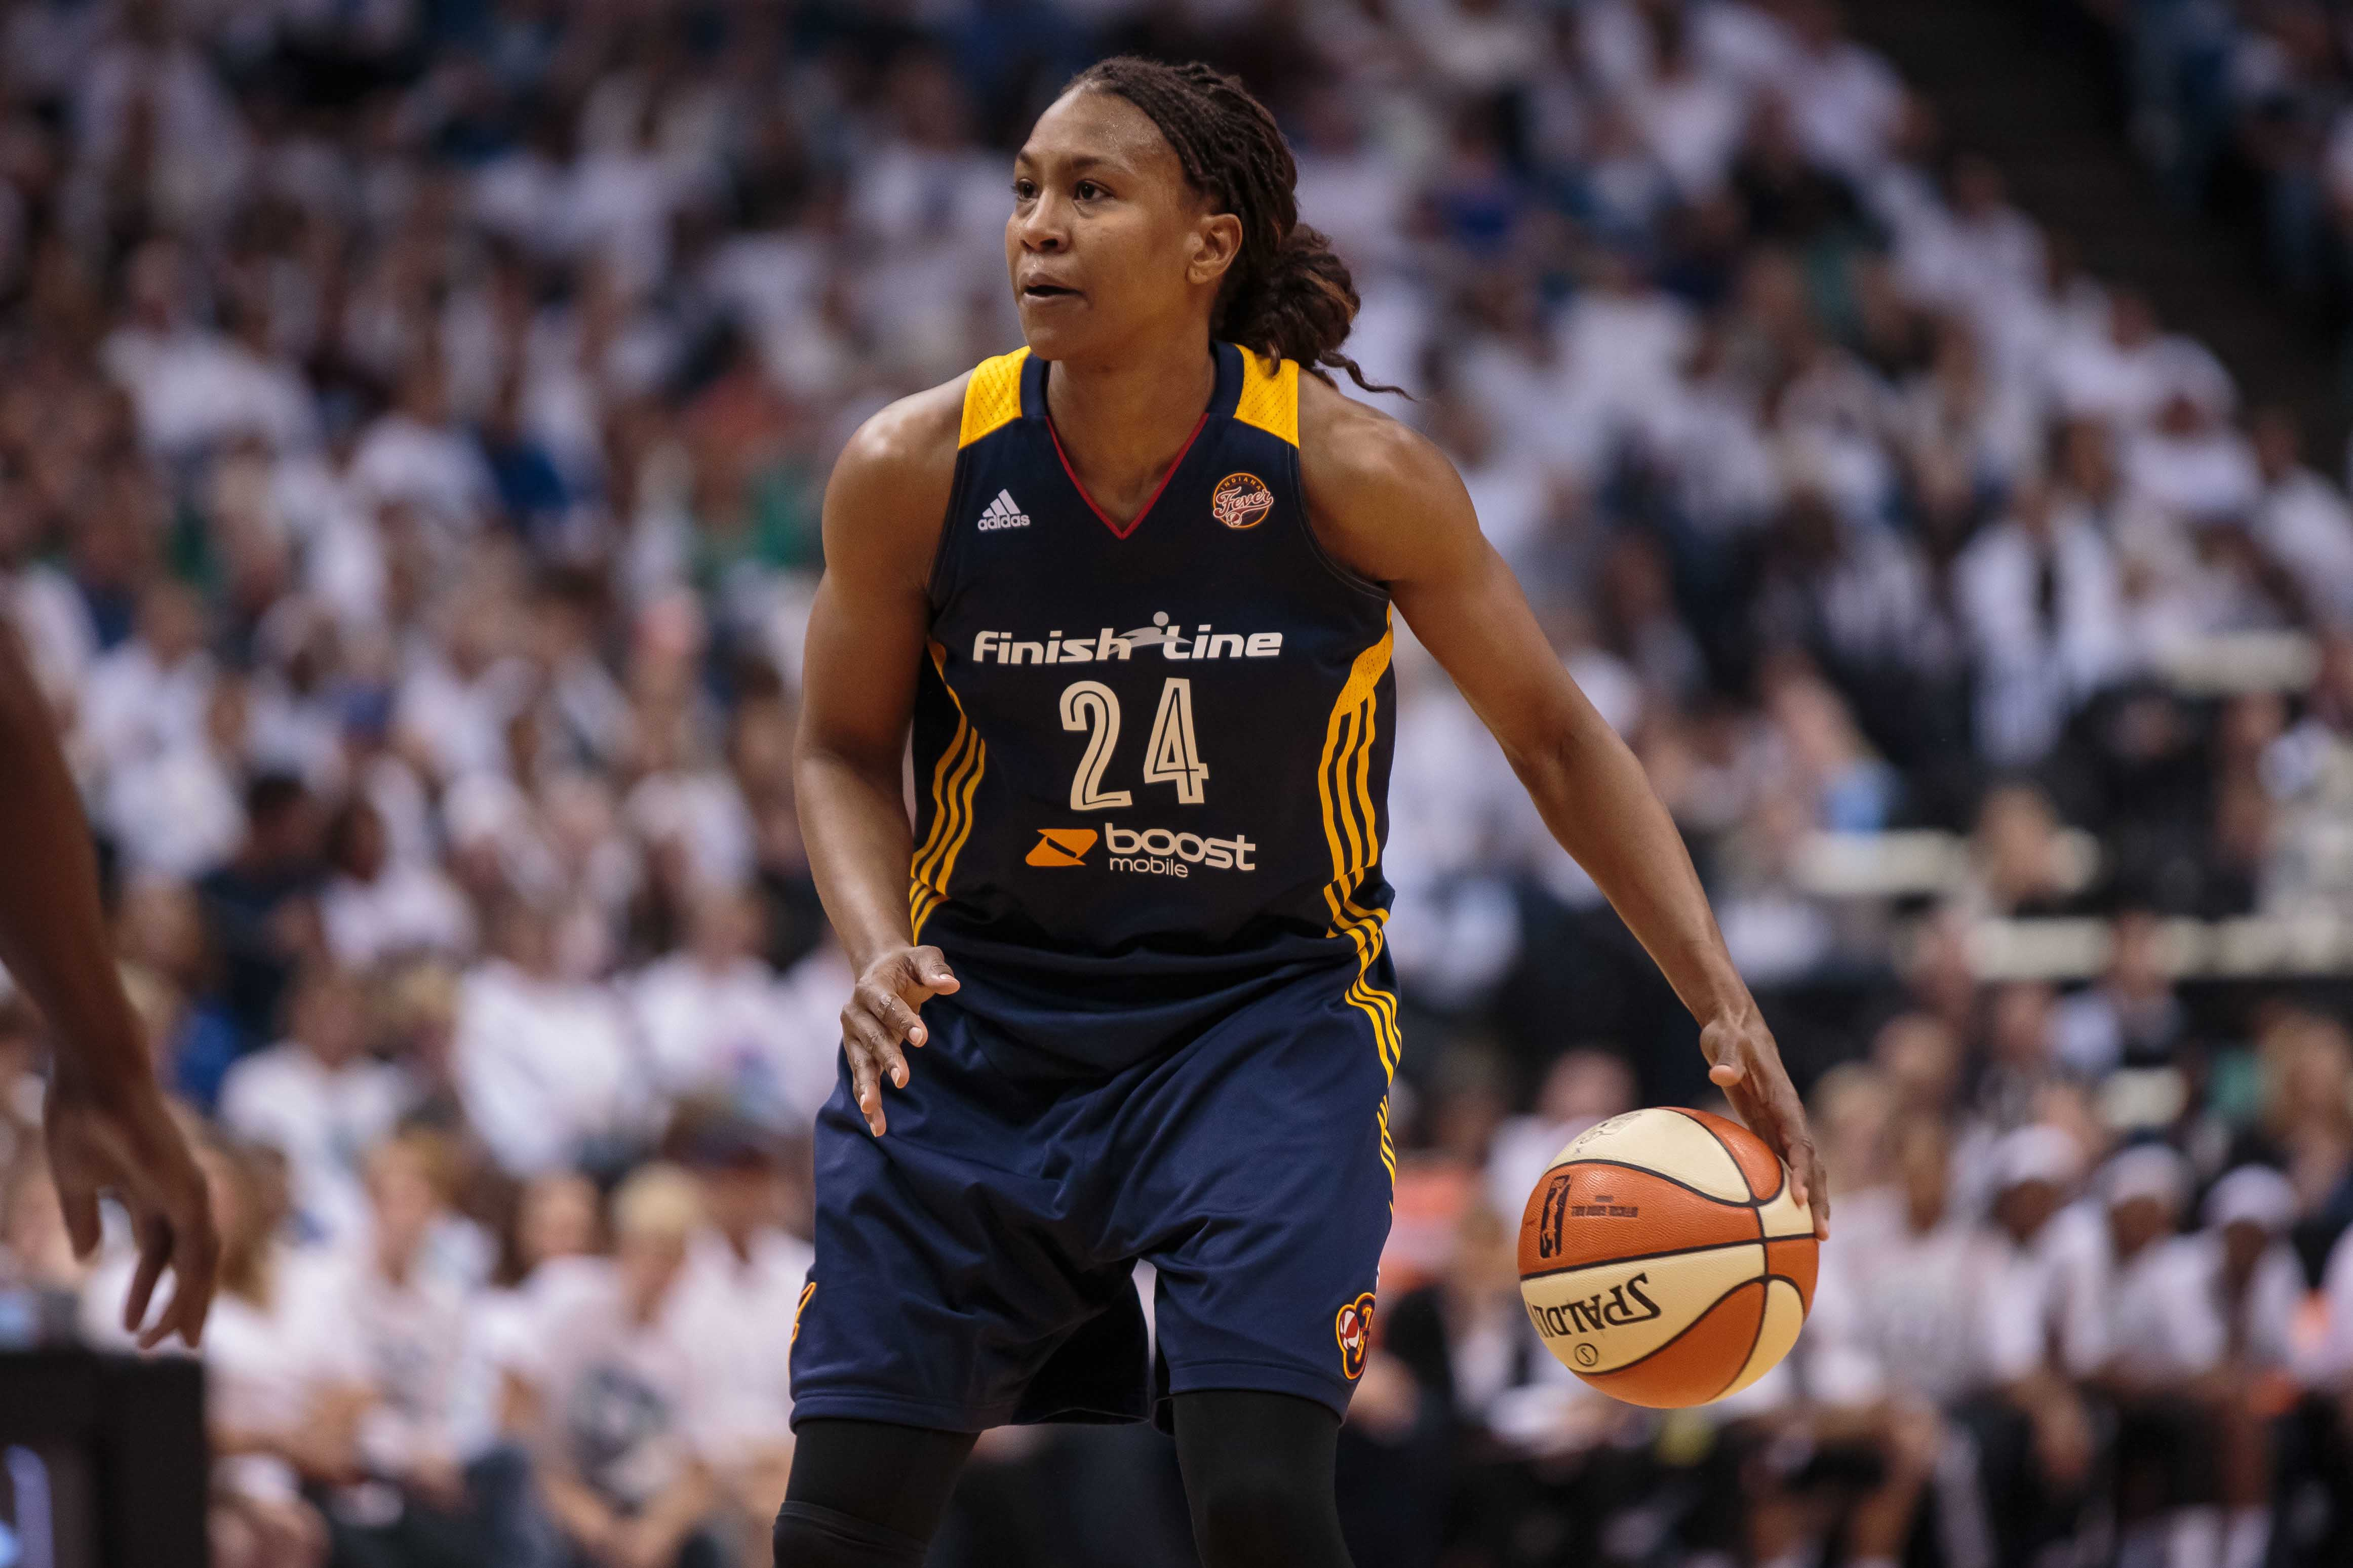 Indiana Fever forward Tamika Catchings (24). (Photo: Brad Rempel, USA TODAY Sports)